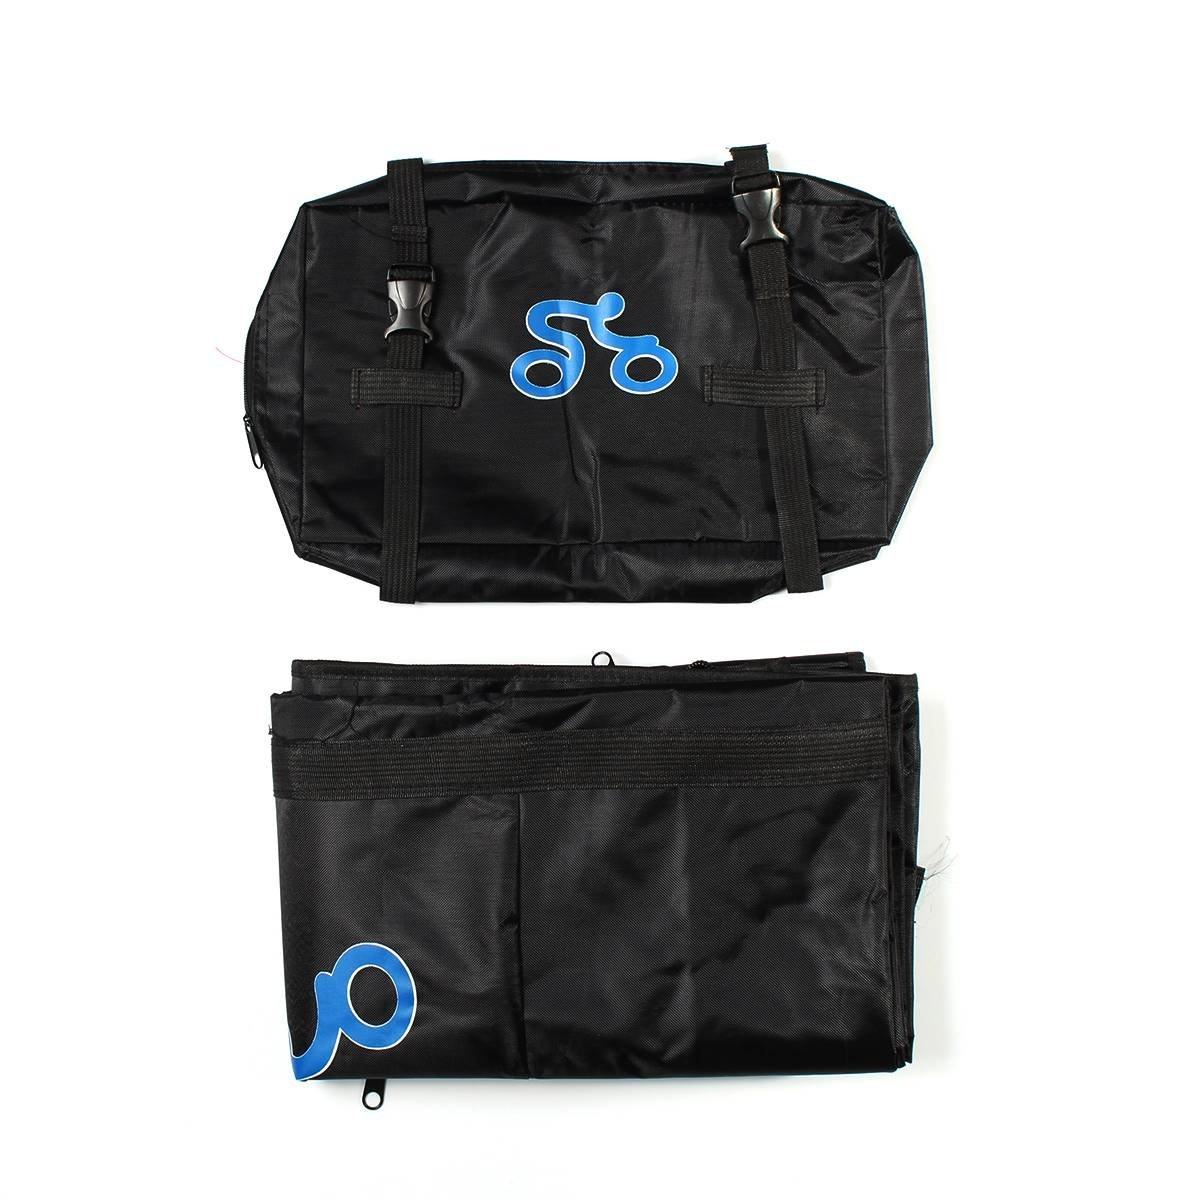 OUTERDO 26-inch Mountain Bike Bicycle Loading Bags Loading Oxford Thick Package Bags by OUTERDO (Image #6)